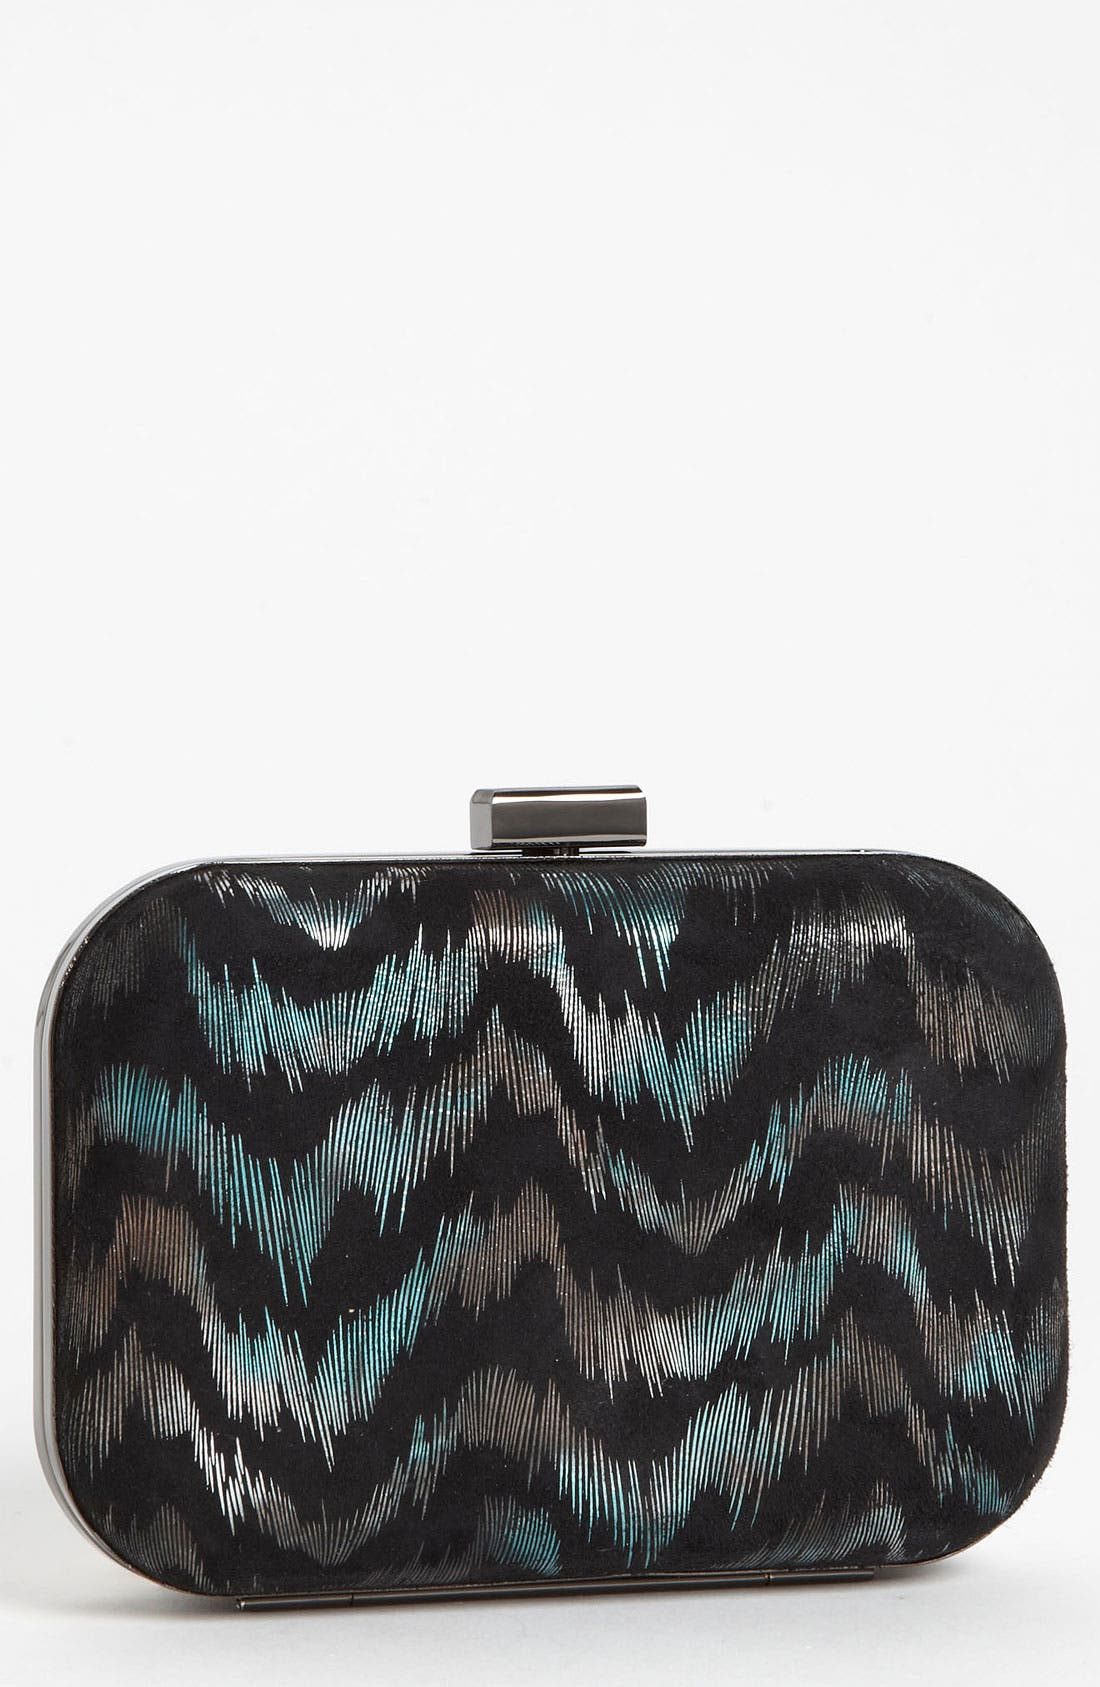 Alternate Image 1 Selected - Inge Christopher 'Metallic Wave' Box Clutch